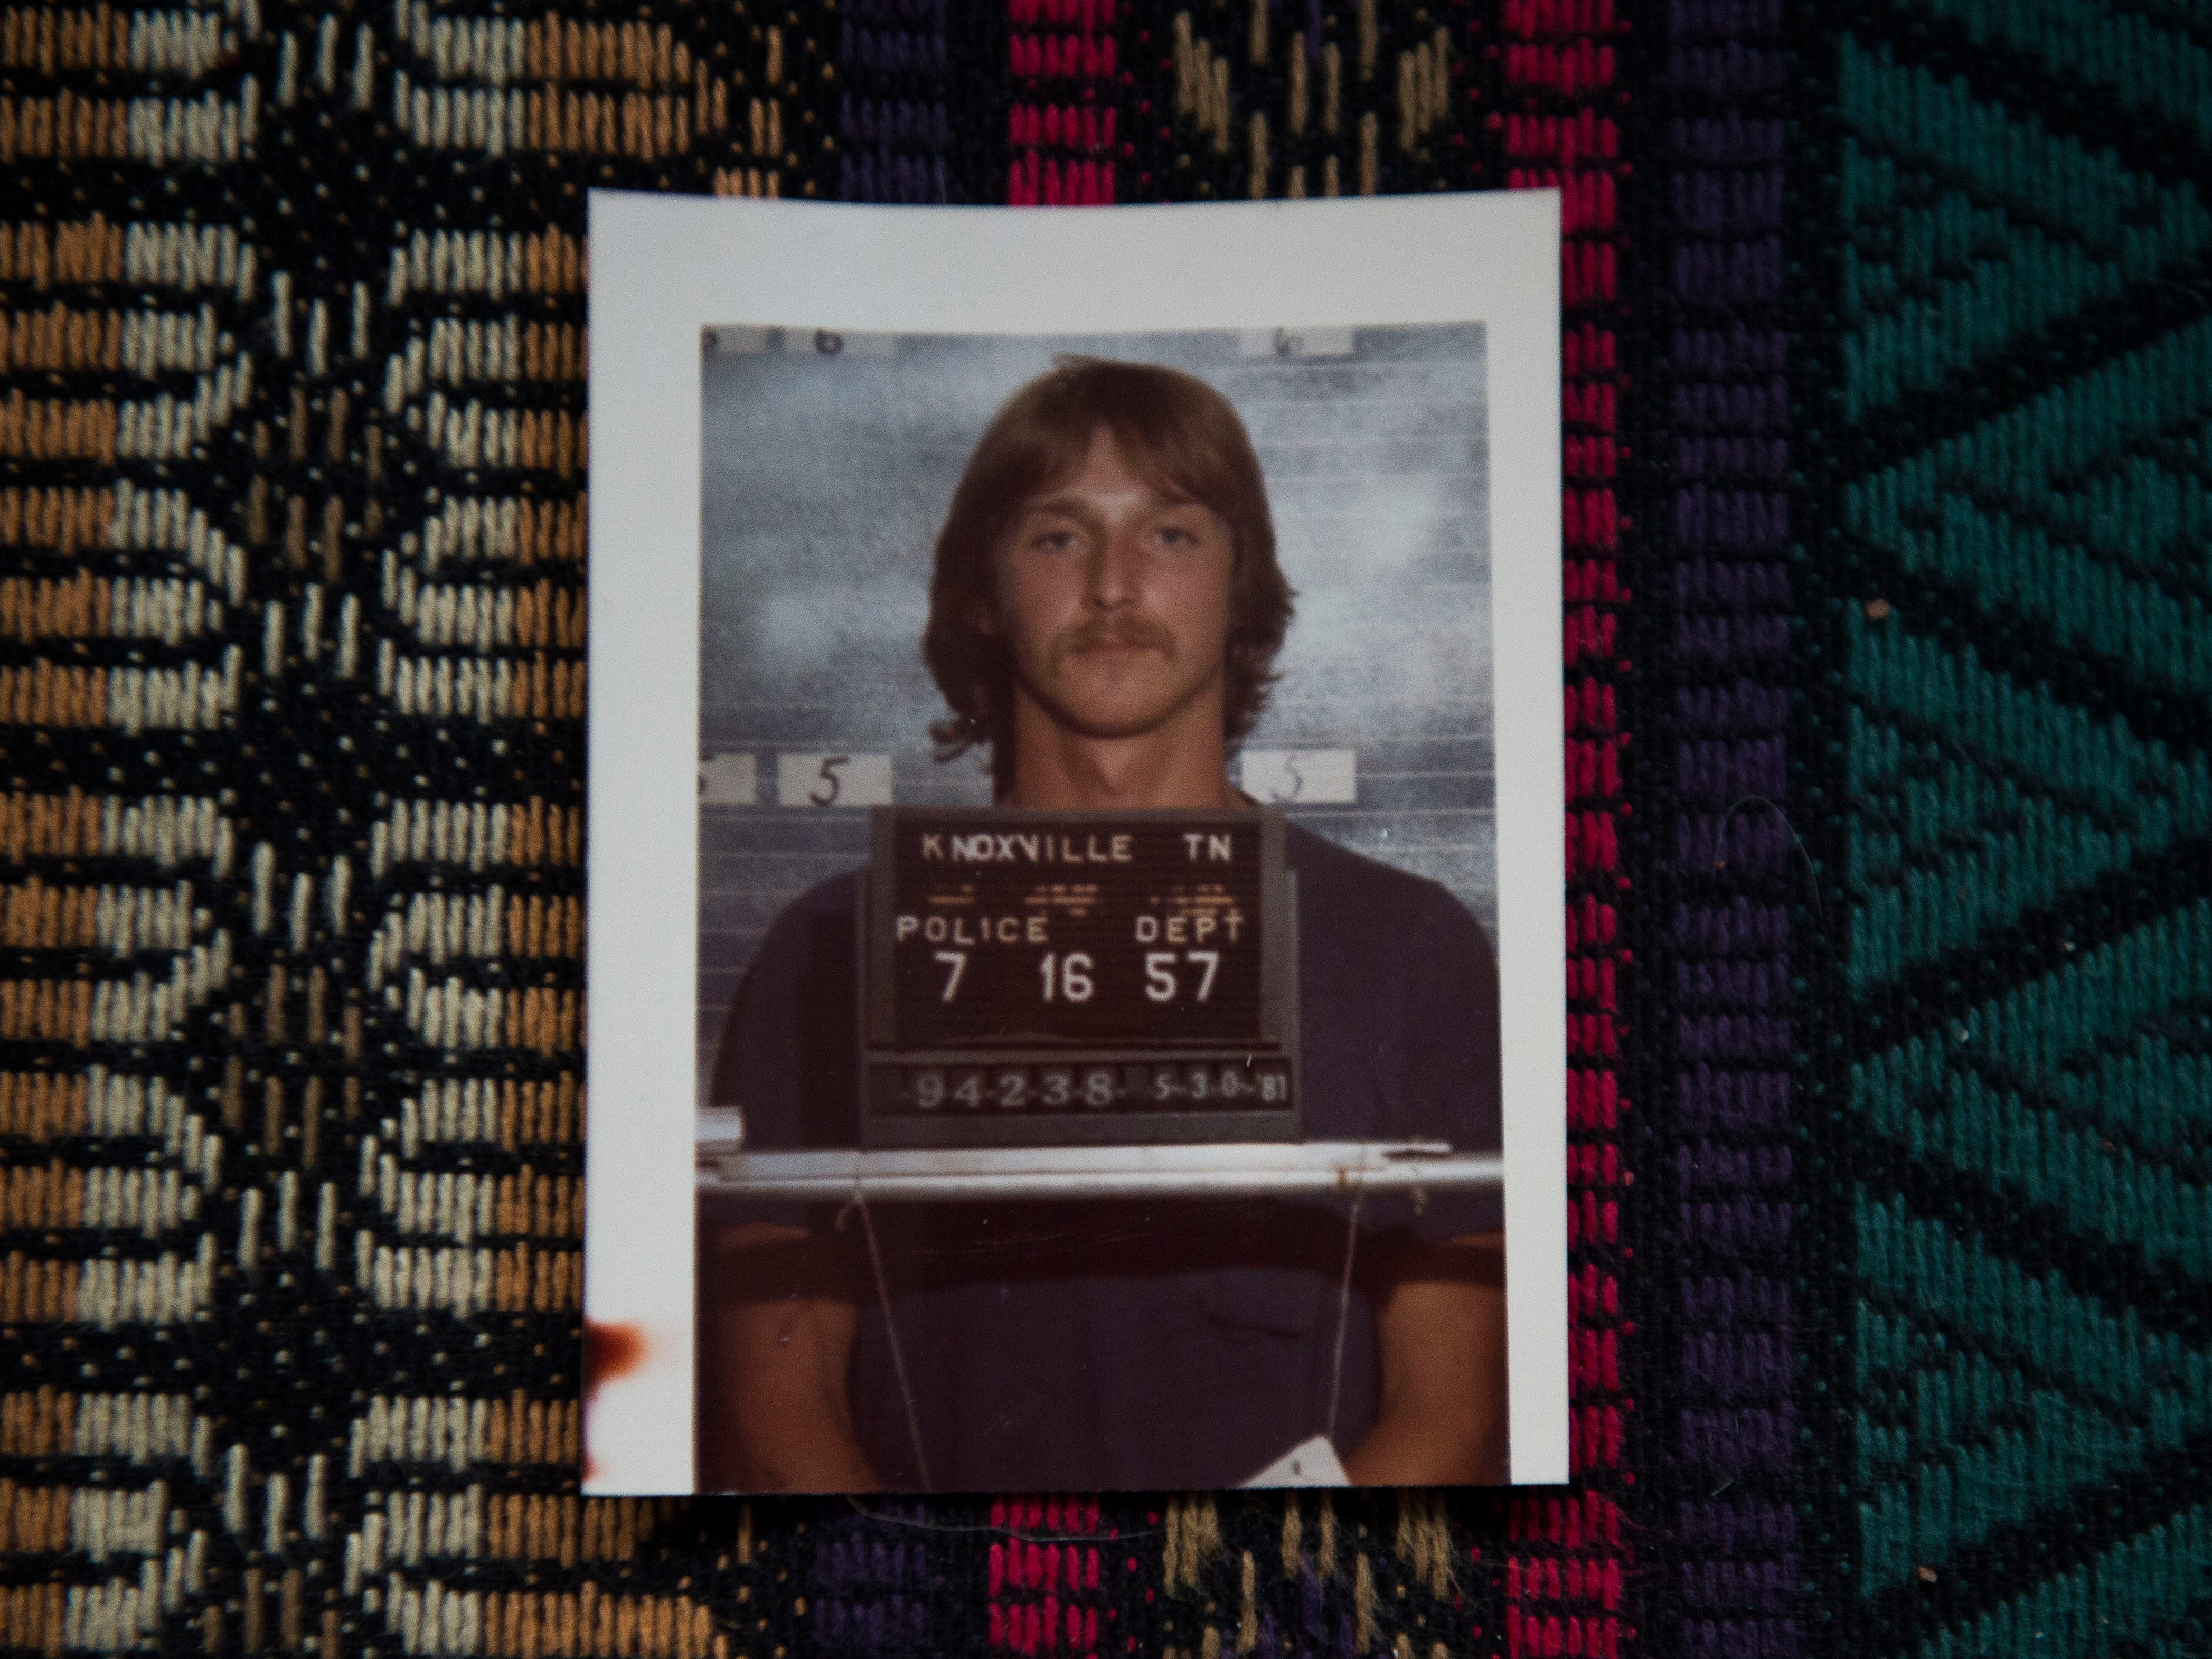 A mugshot of David Earl Miller, in 1981, kept at Knoxville Police Department investigator Jim Winston's Knoxville home Tuesday, Nov. 27, 2018. Winston recounted the case of David Earl Miller's murder of Lee Standifer.